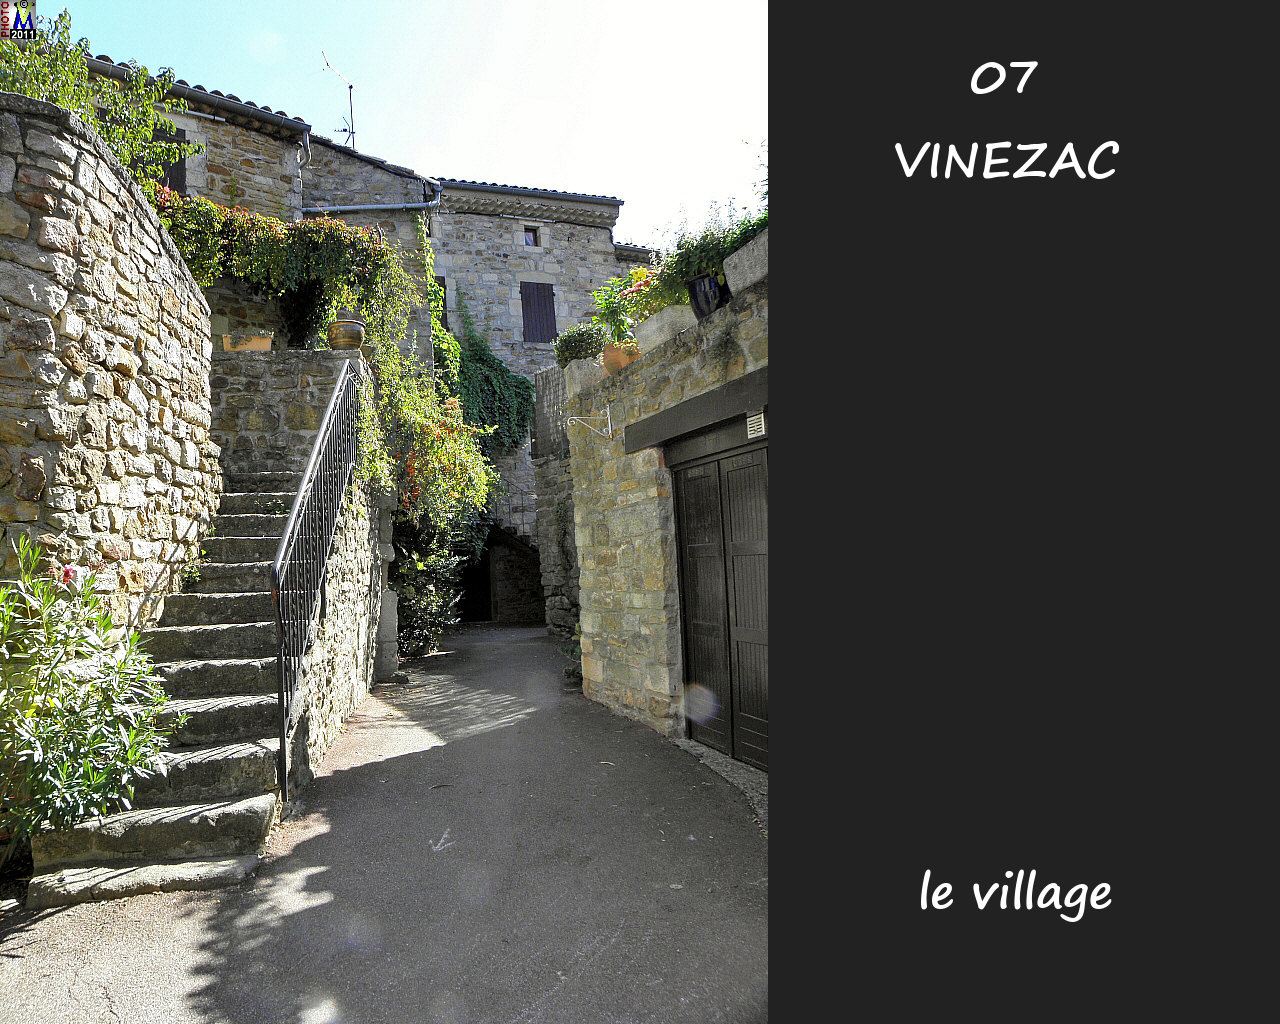 07VINEZAC_village_102.jpg